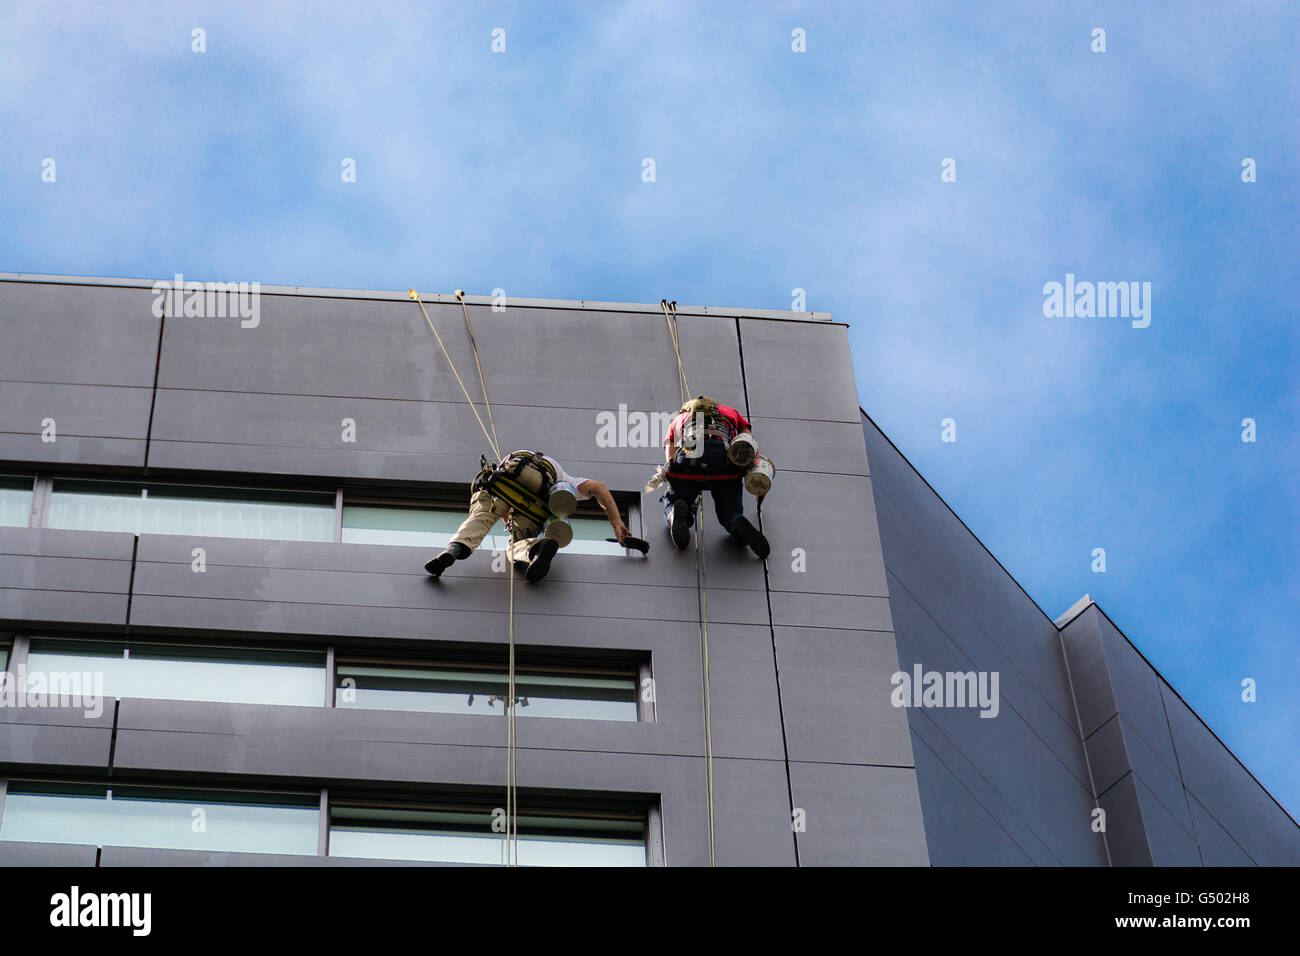 New Zealand, Auckland, Secured facade workers dangle at high-rise building, painting work on a facade - Stock Image